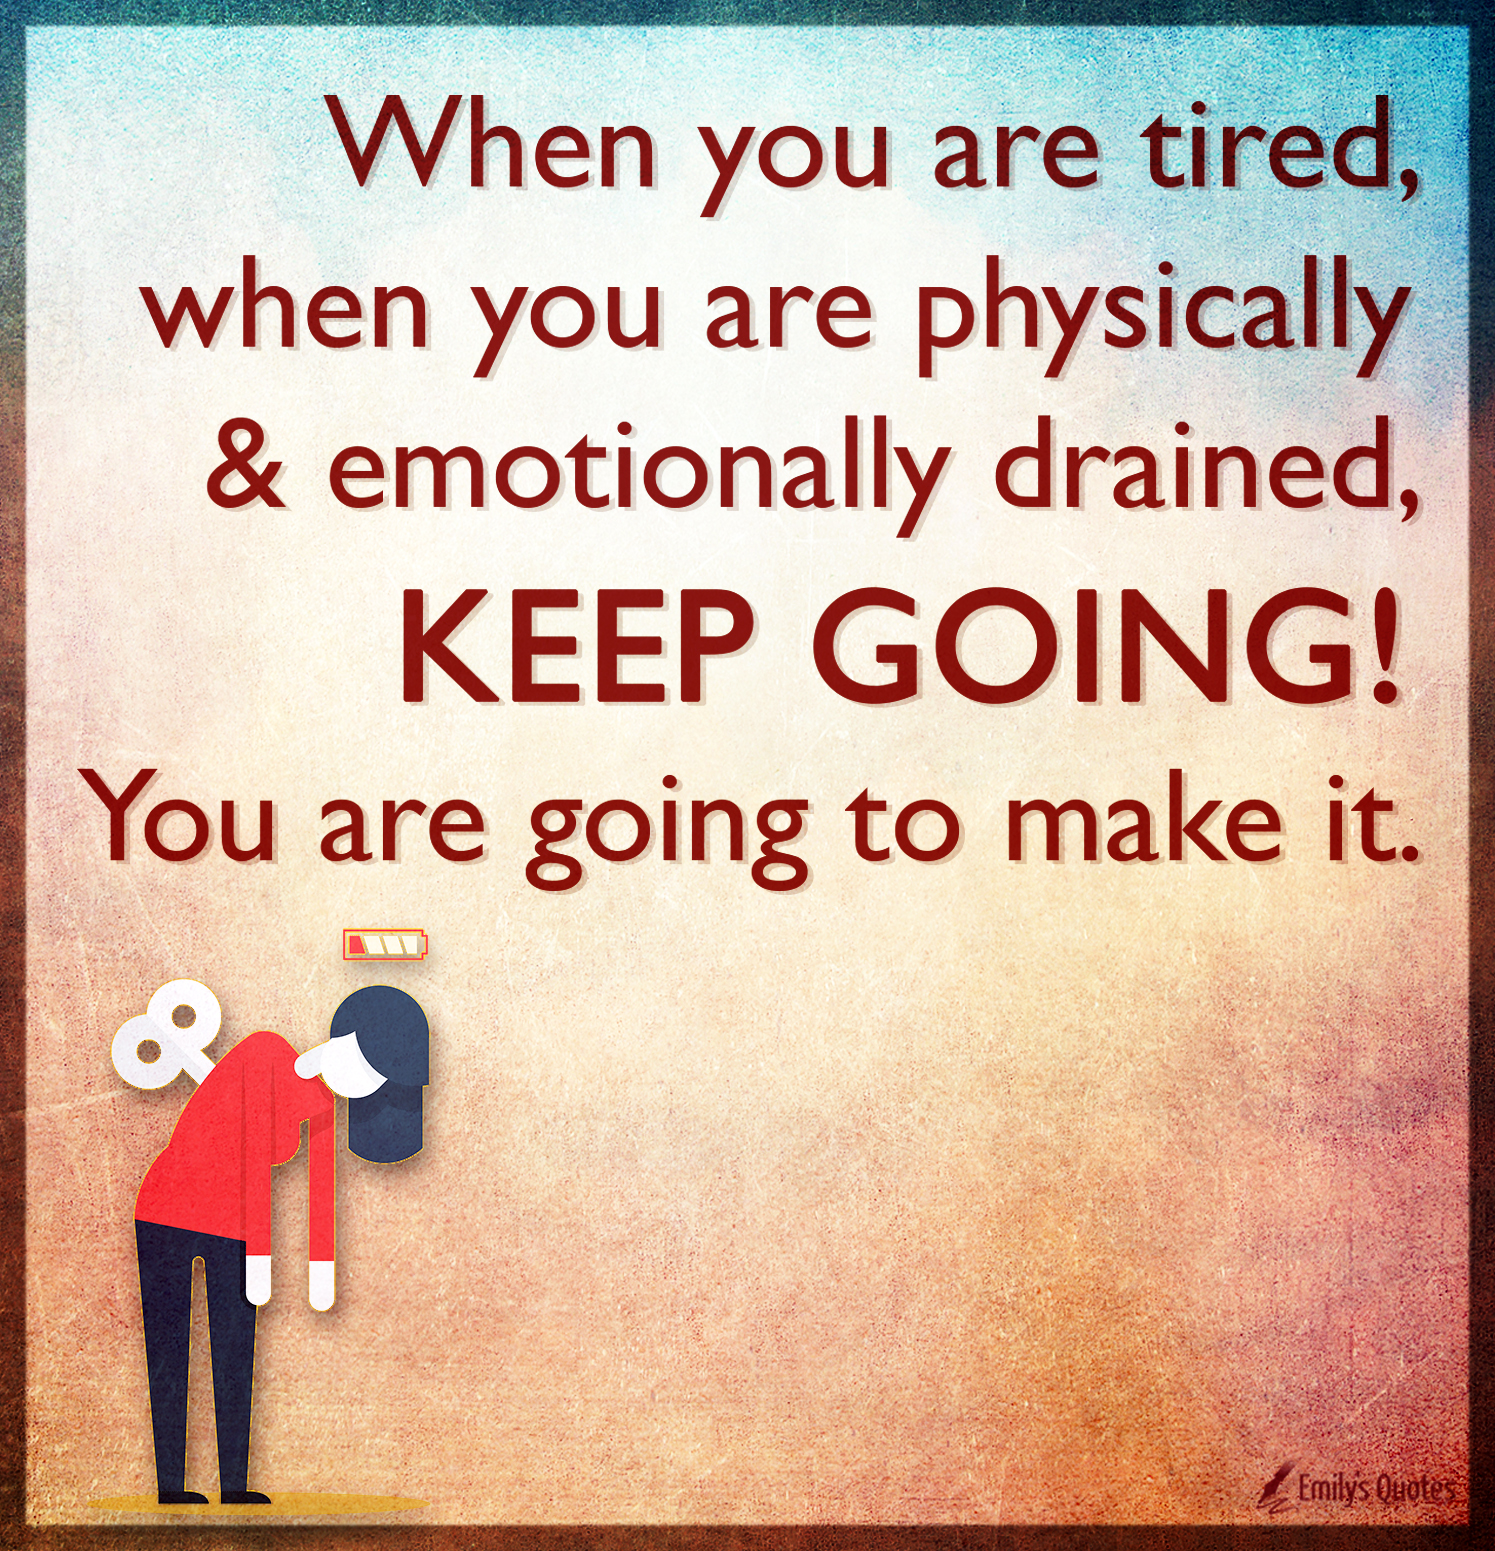 When you are tired, when you are physically & emotionally